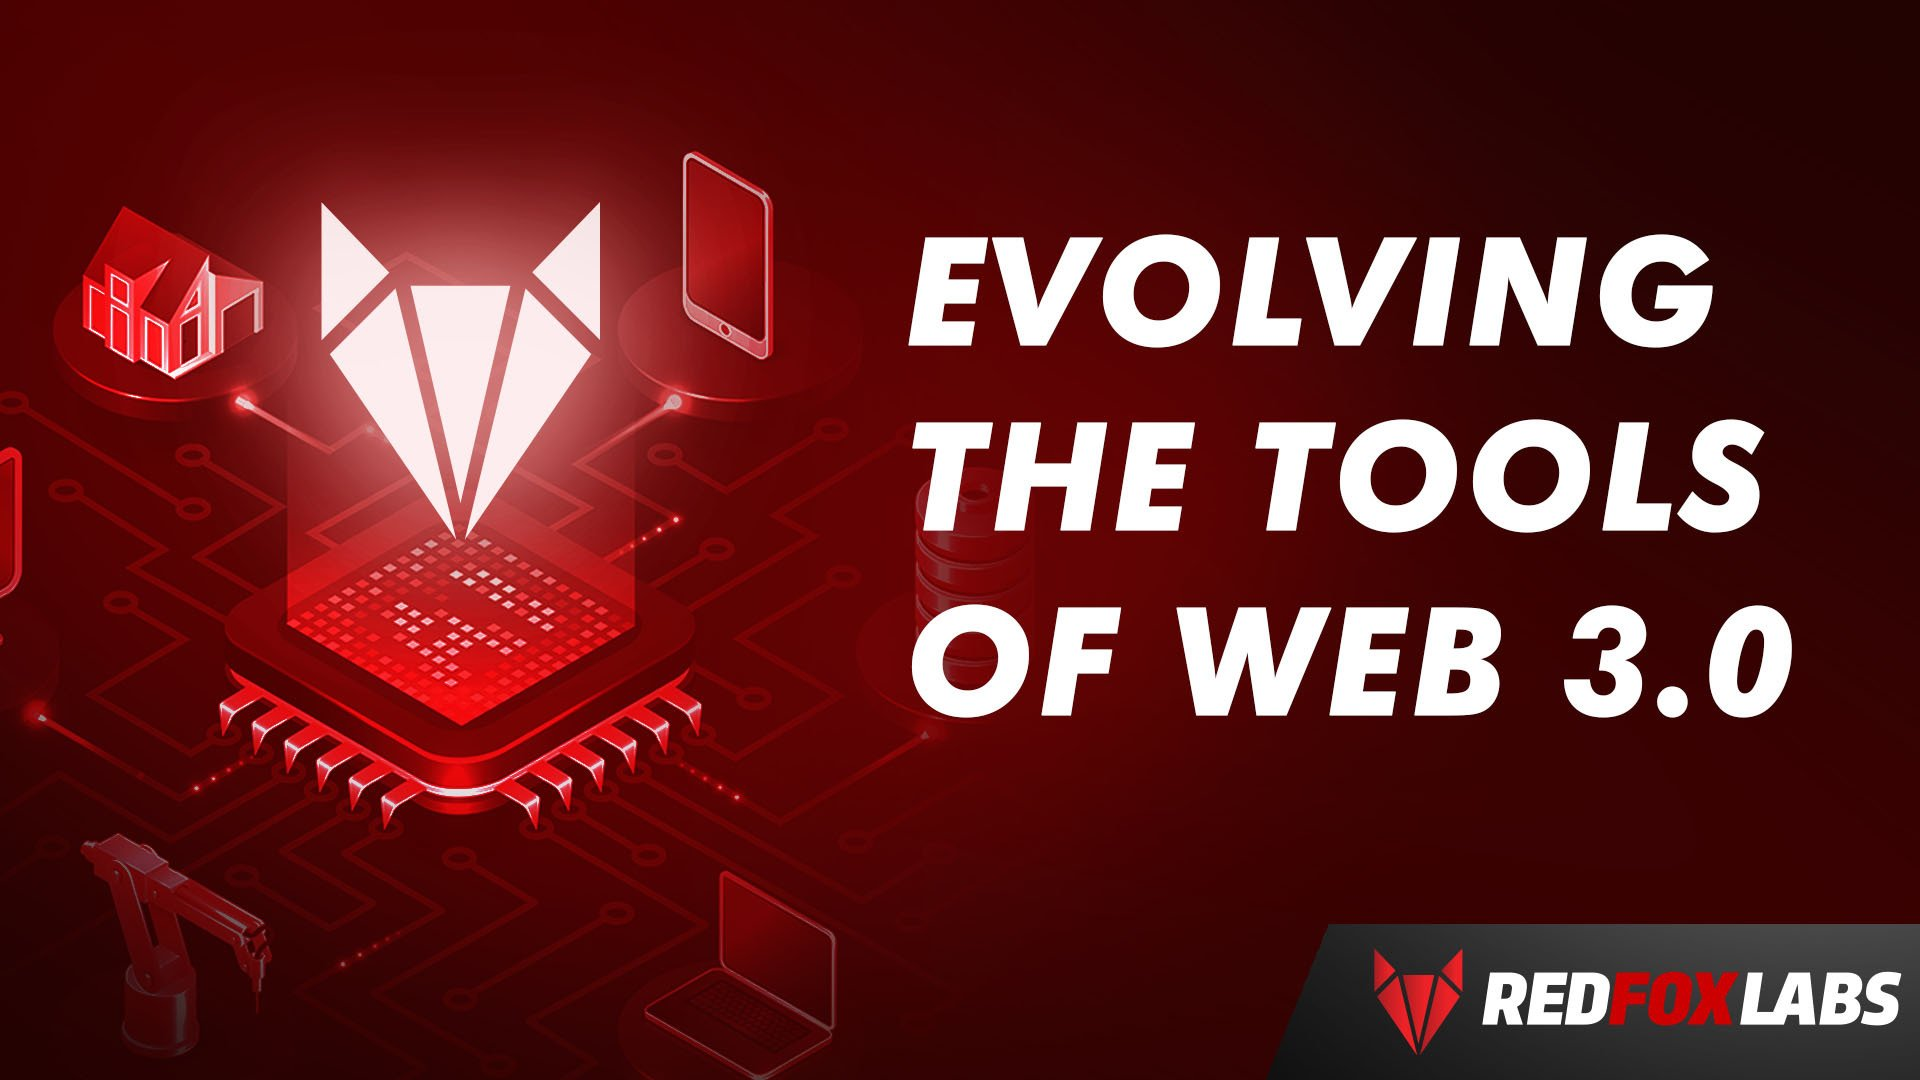 Evolving The Tools of Web 3.0